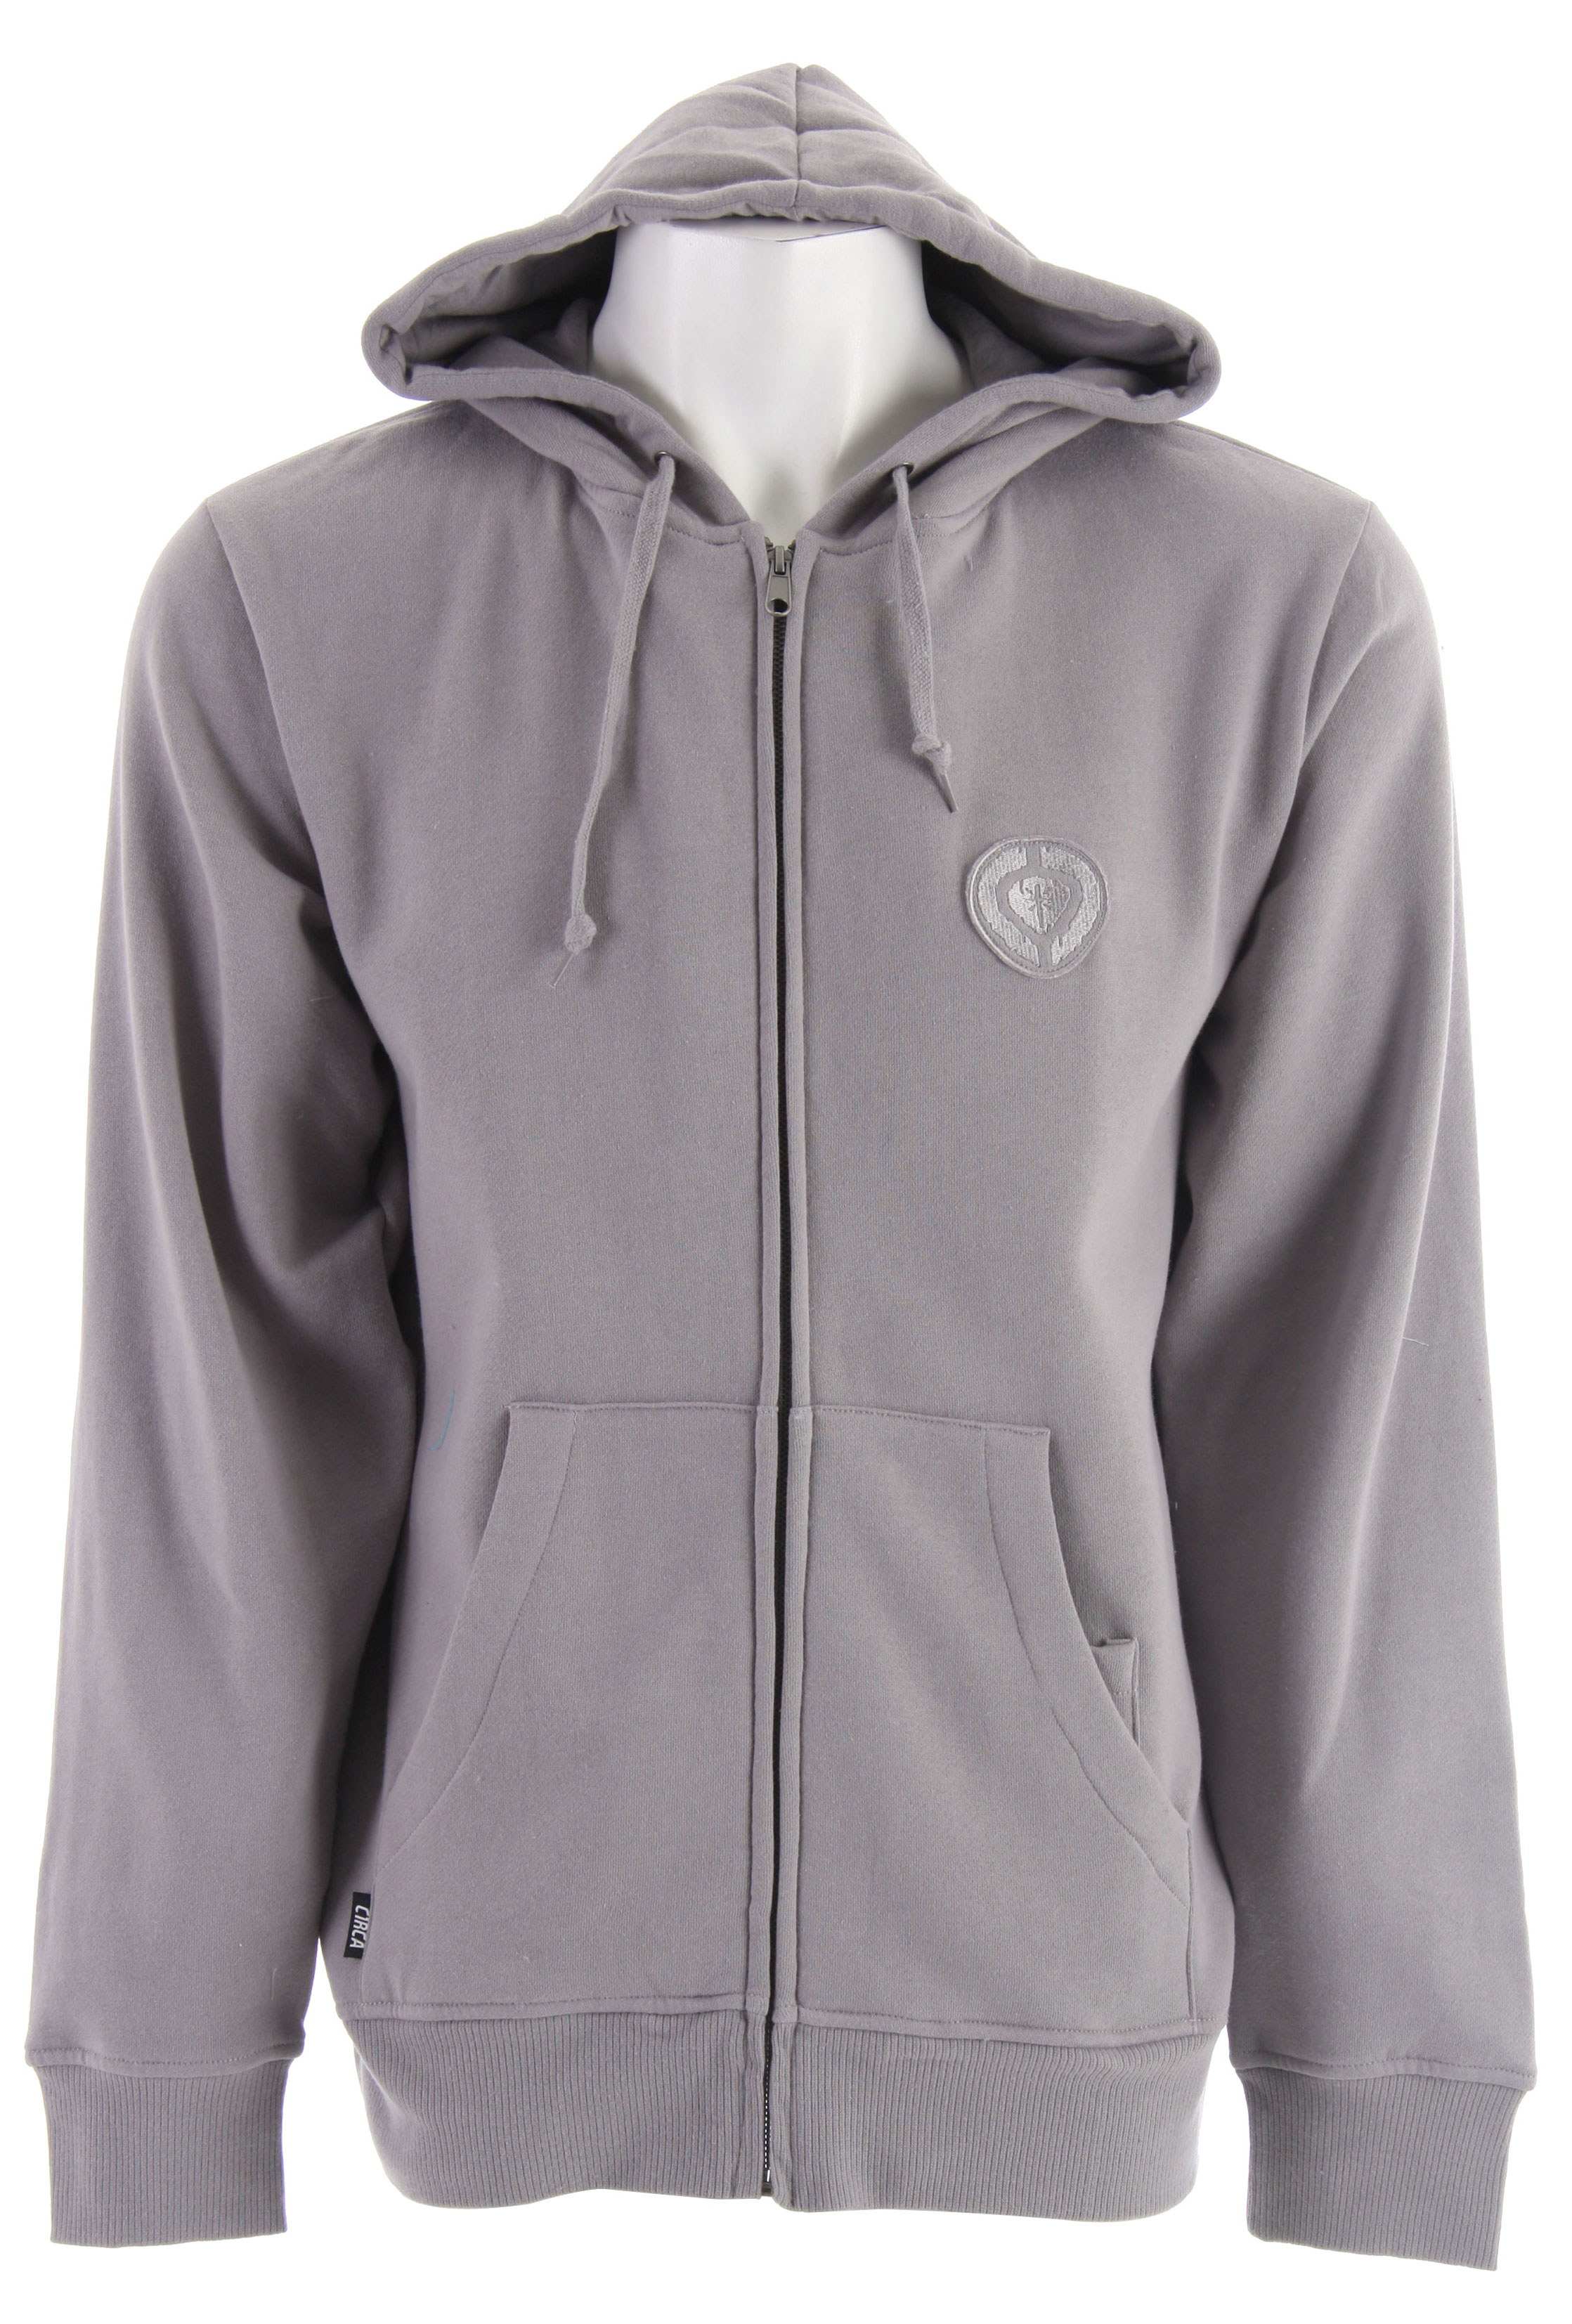 Key Features of the Circa Lopez Zip Hoodie: 80% Cotton/20% Polyester Standard Fit Heavy weight brushed fleece Back print Applique branding - $41.95